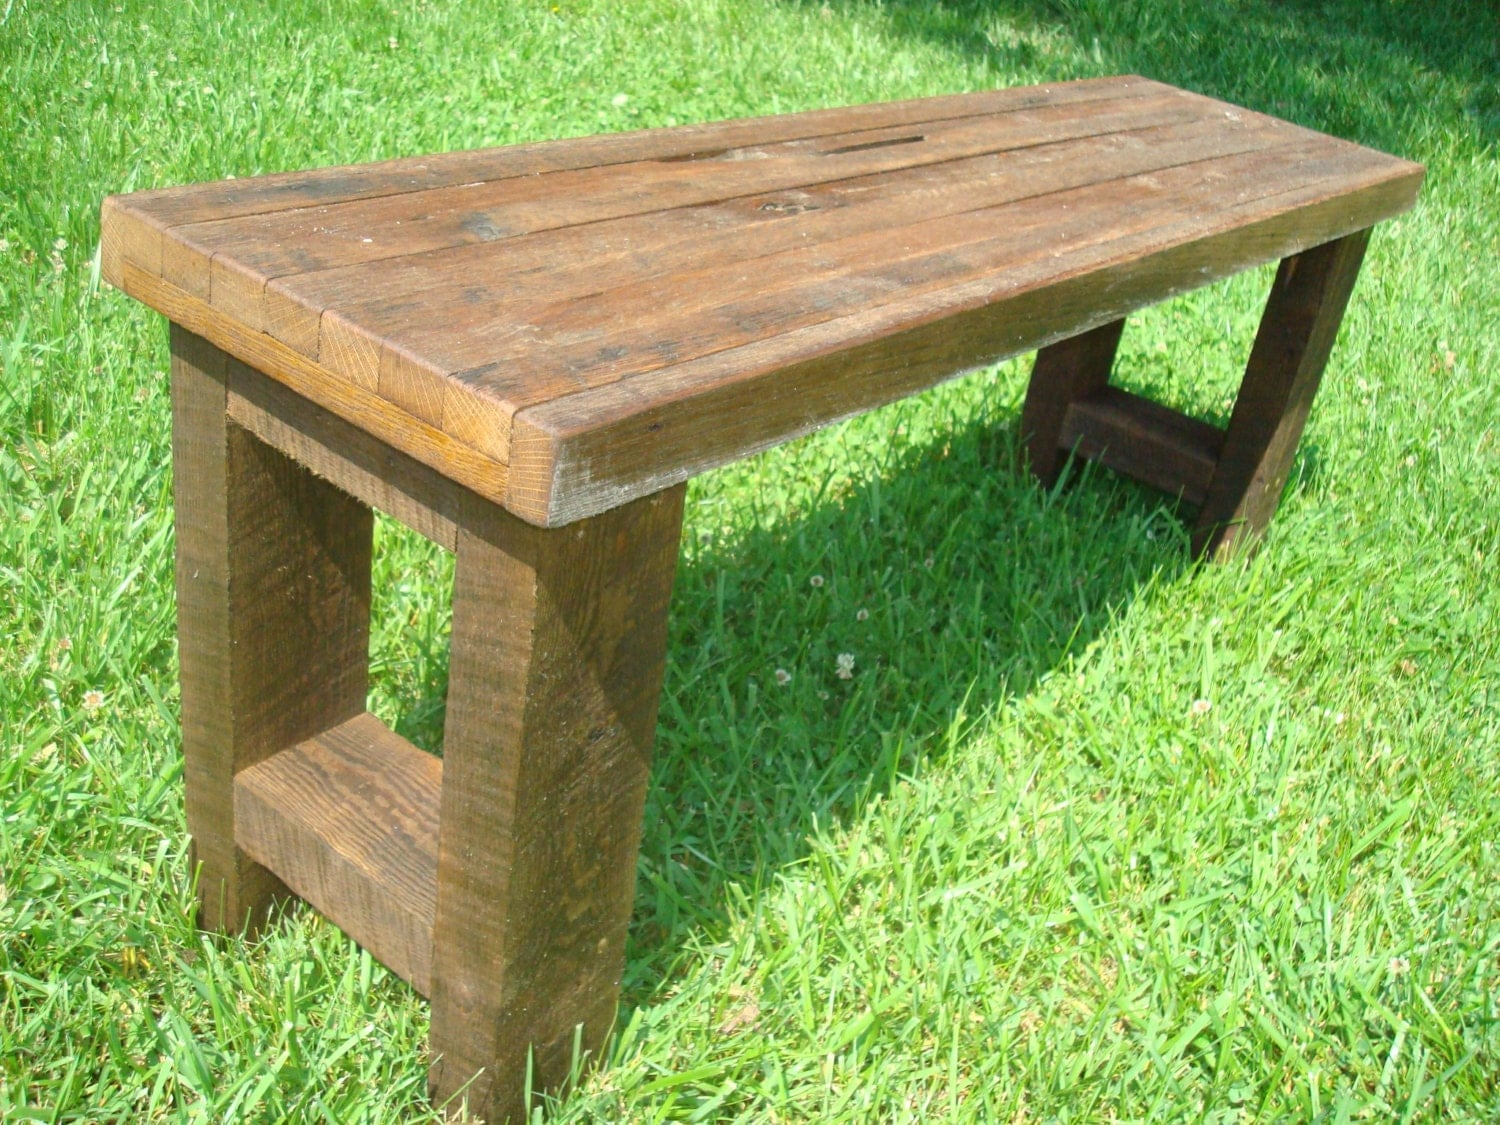 Bench Wood Bench Gnarly Bench Rustic Reclaimed Wood Bench